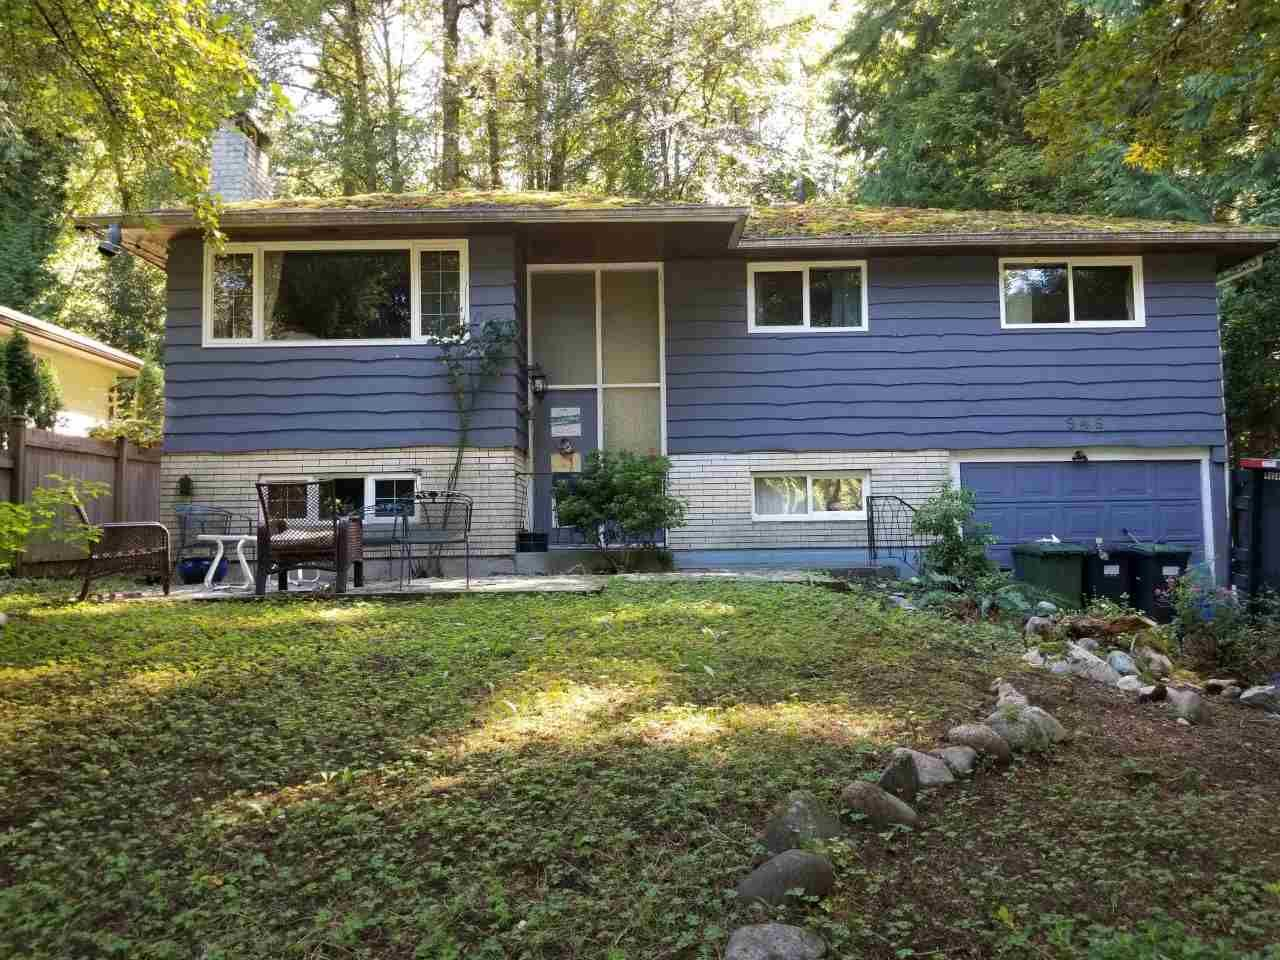 Main Photo: 946 RIVERSIDE Drive in North Vancouver: Seymour NV House for sale : MLS®# R2491229